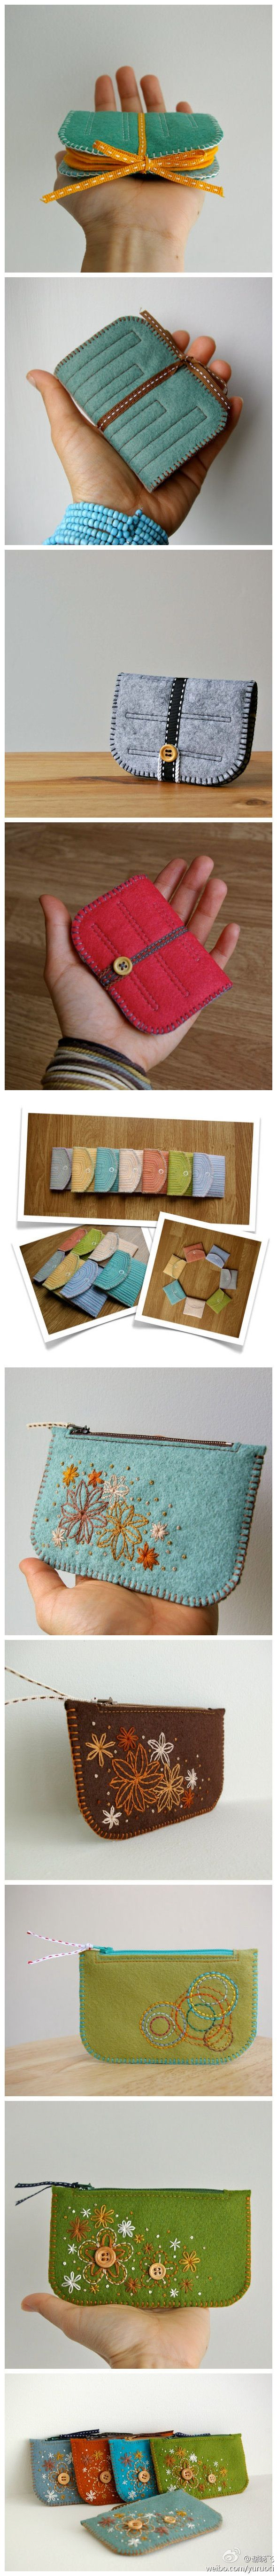 Cute diy pouch inspiration......website is Chinese....